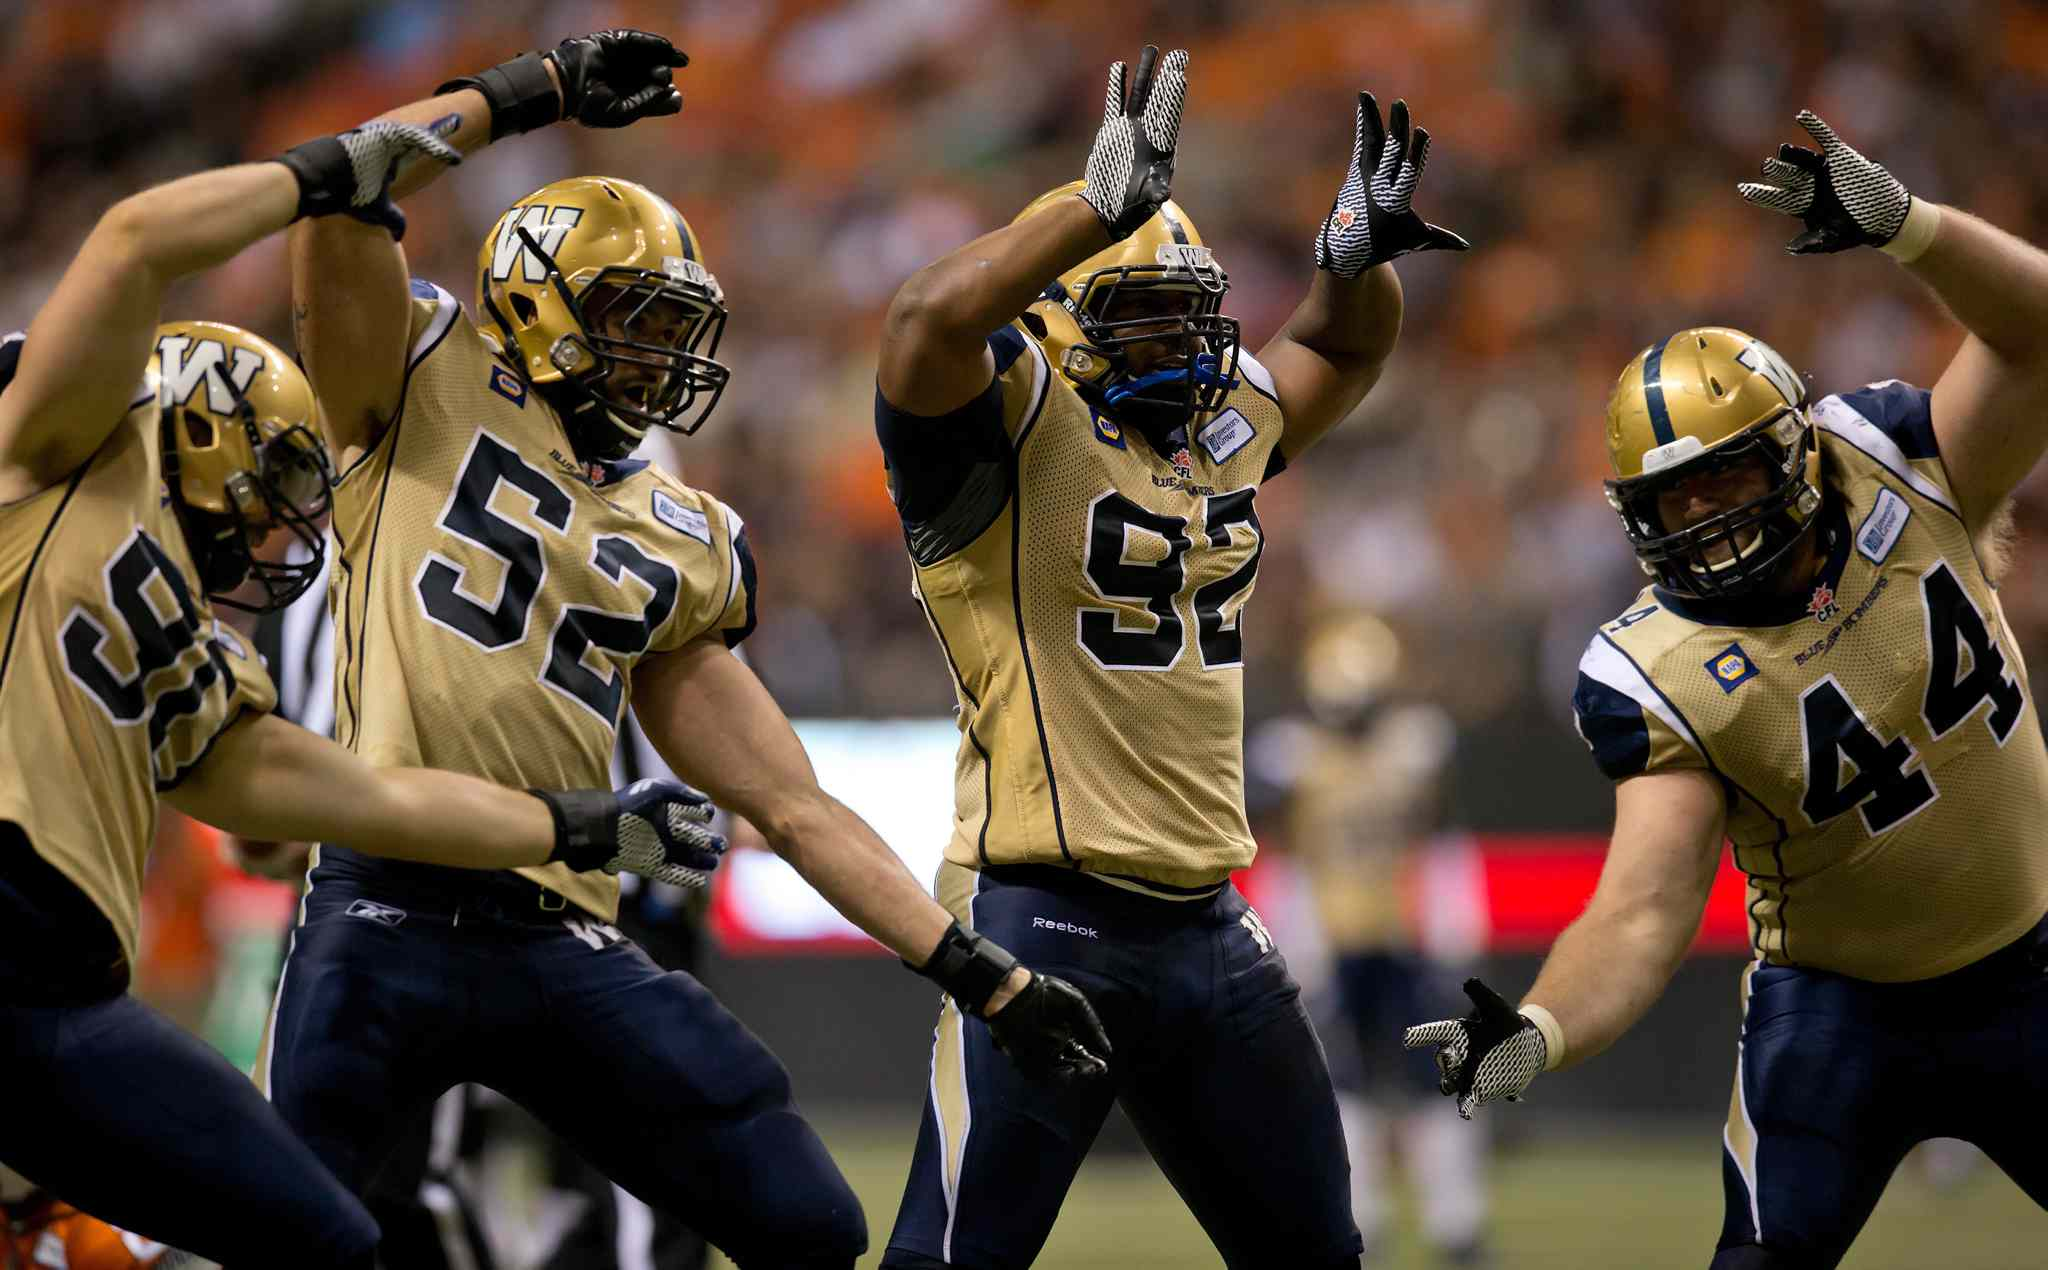 From left, Winnipeg Blue Bombers' Greg Peach, Louie Richardson, Bryant Turner Jr. and Zach Anderson celebrate after Turner sacked B.C. Lions' quarterback Kevin Glenn during the second half of Friday's game.